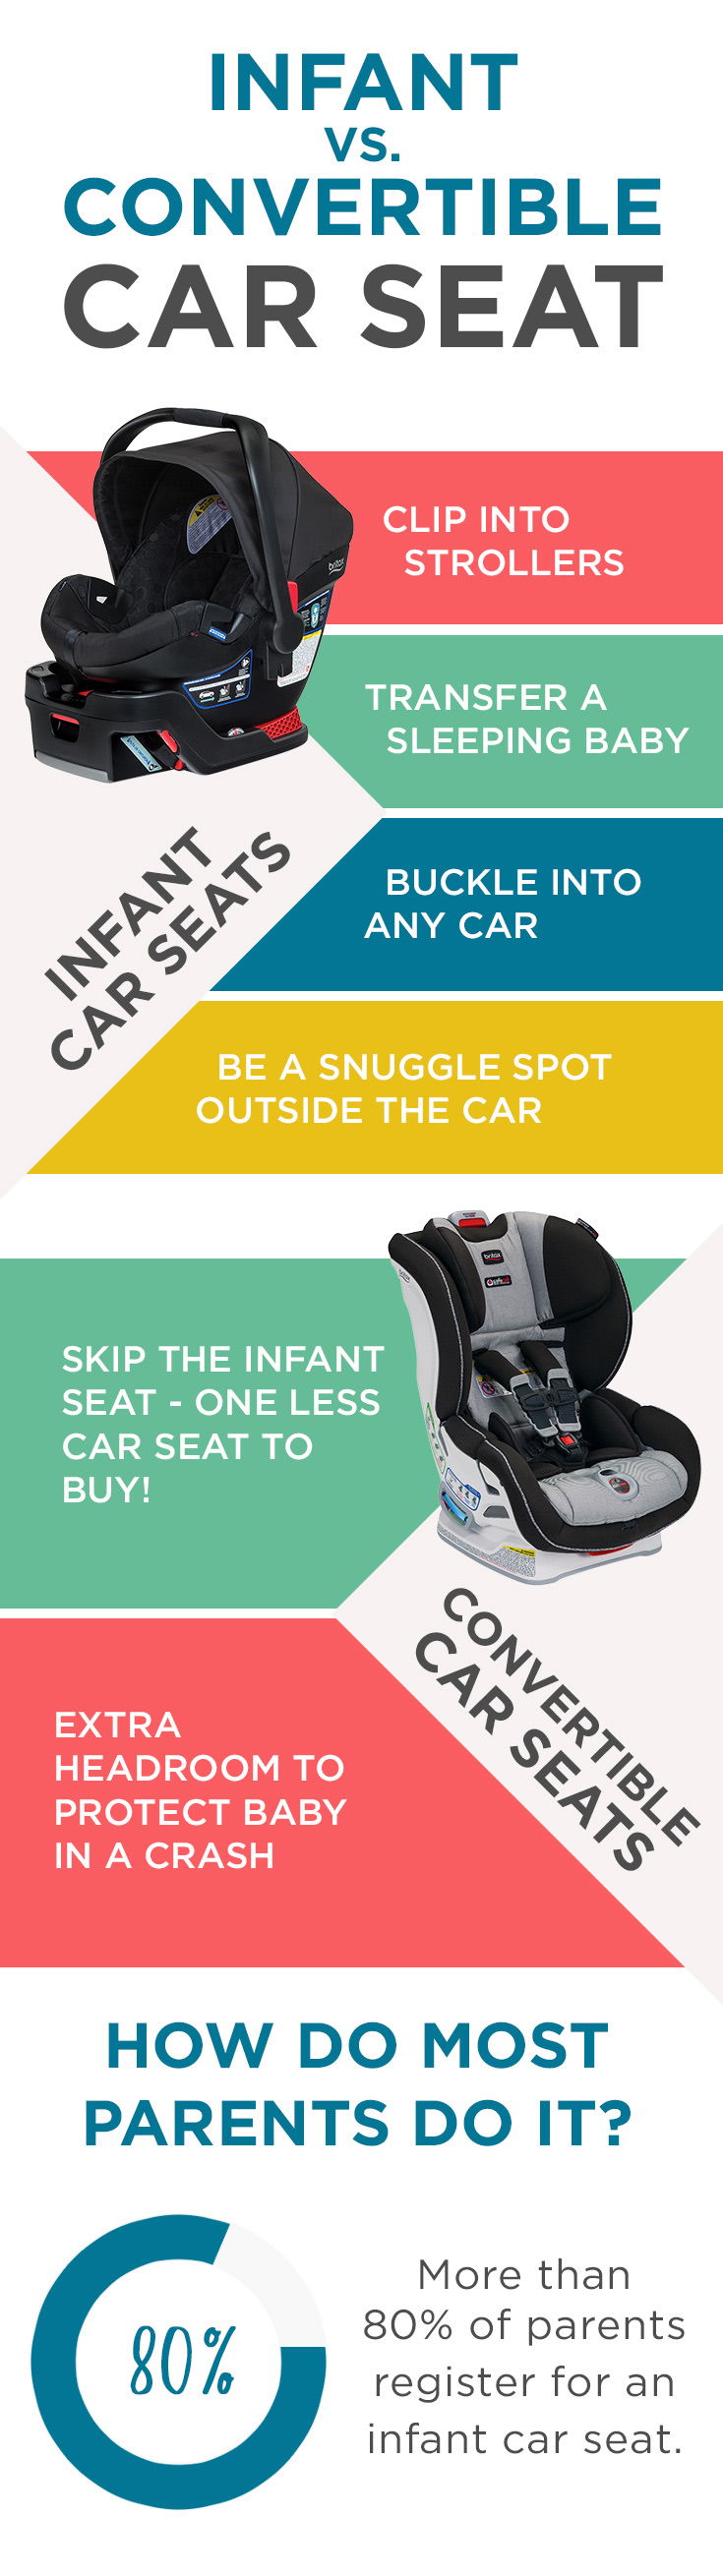 Want to buy the safest possible car seat for their child? You might be making one crucial mistake.